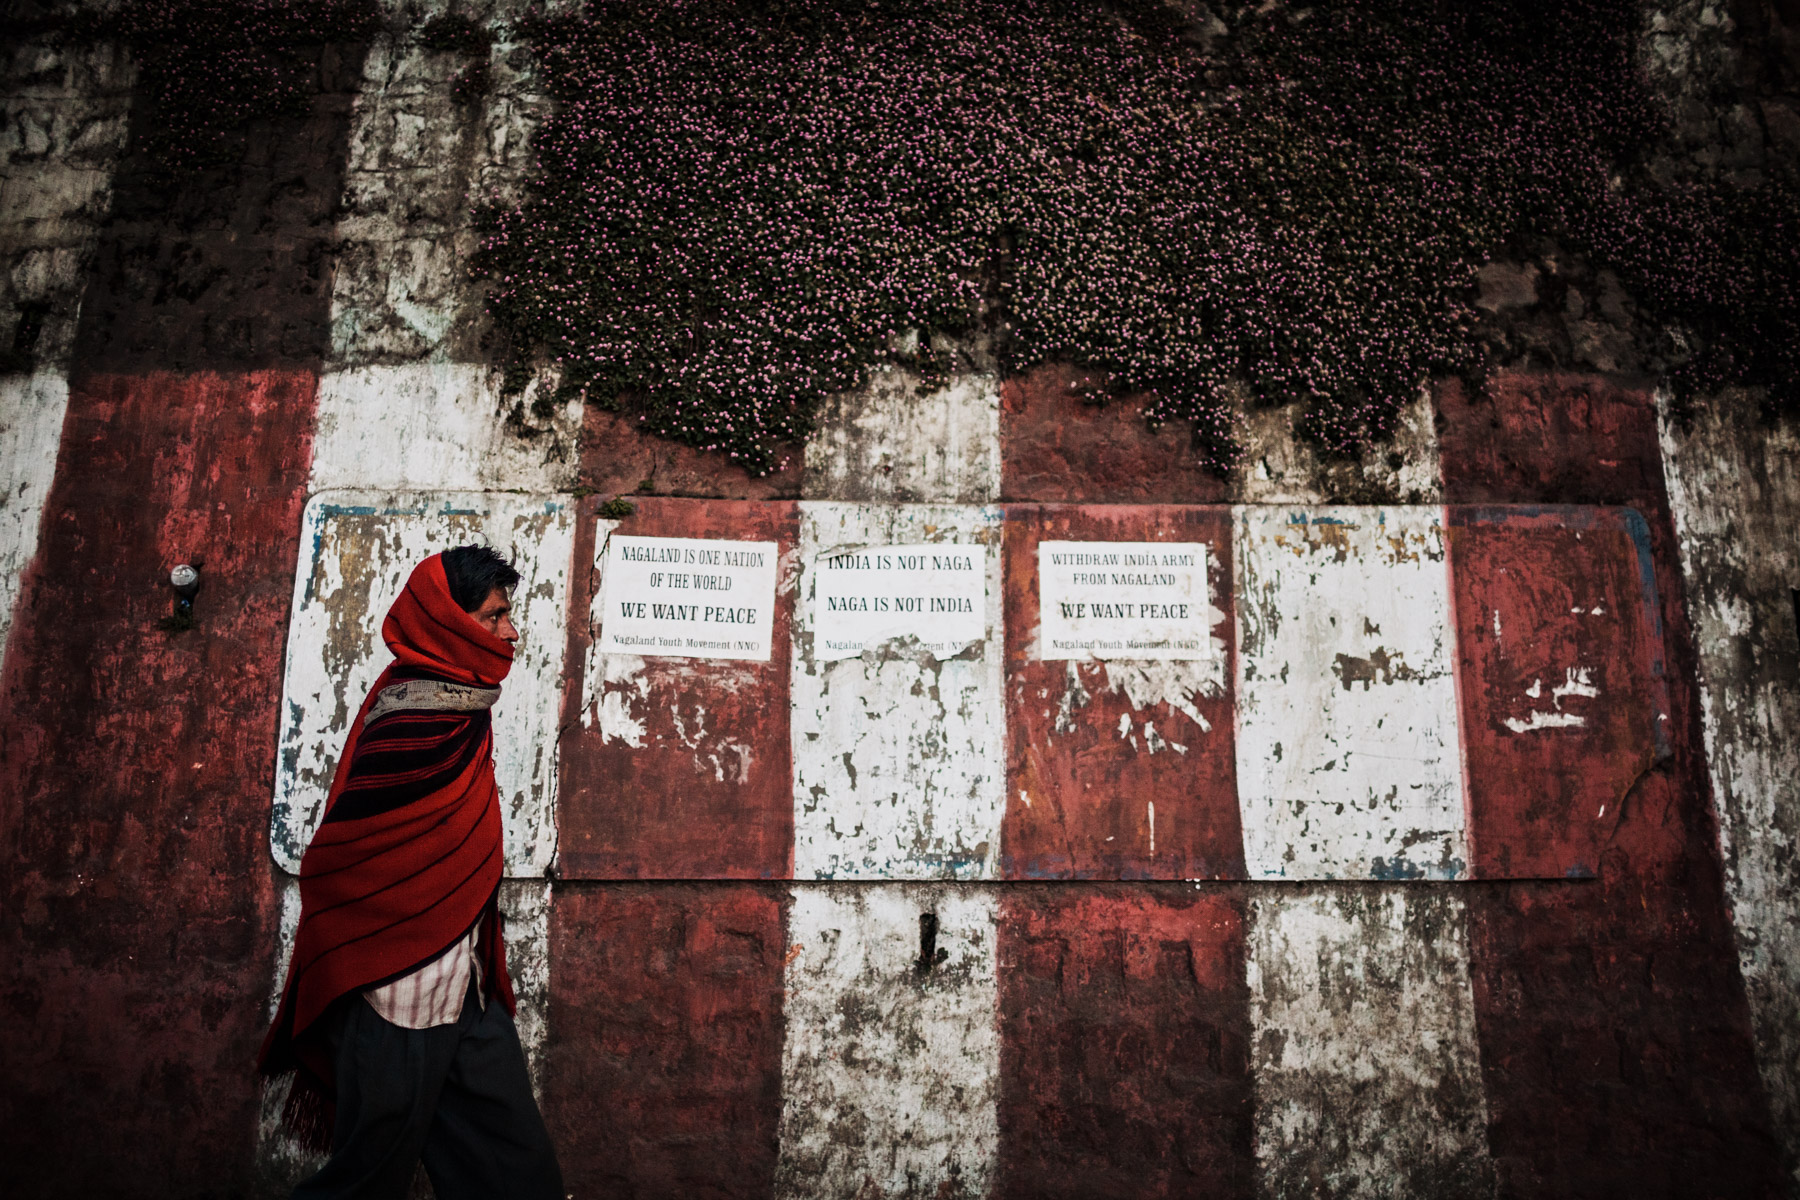 A man walks past signs calling for the annexation and freedom of Nagaland in northeastern India.